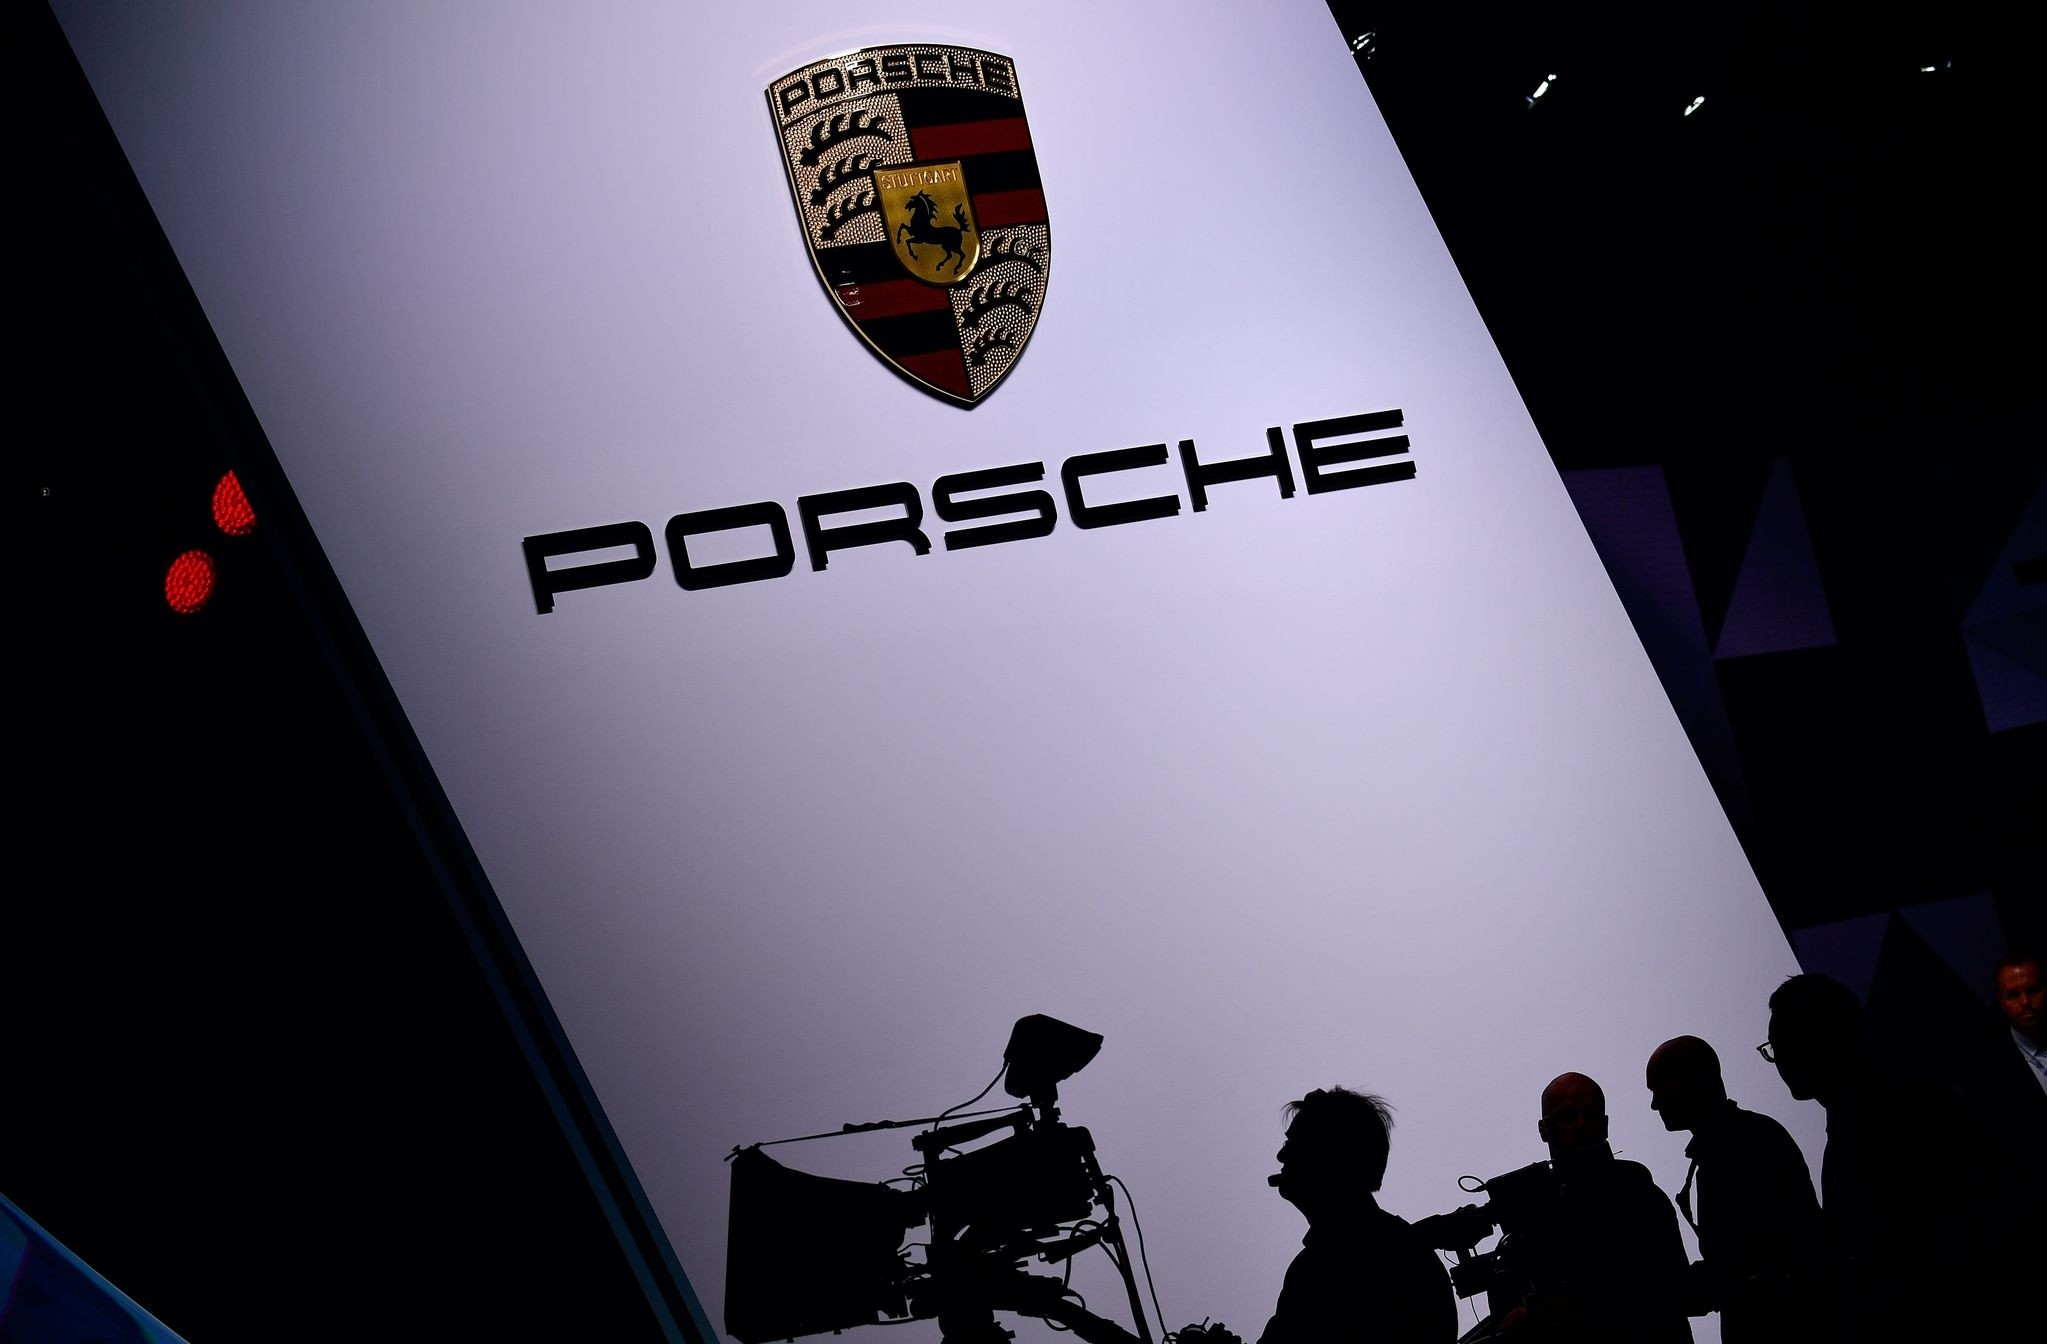 This file photo taken on September 12, 2017 shows cameramen silhouette against an illuminated Porsche ad at the Internationale Automobil Ausstellung (IAA) auto show in Frankfurt am Main. (AFP Photo)